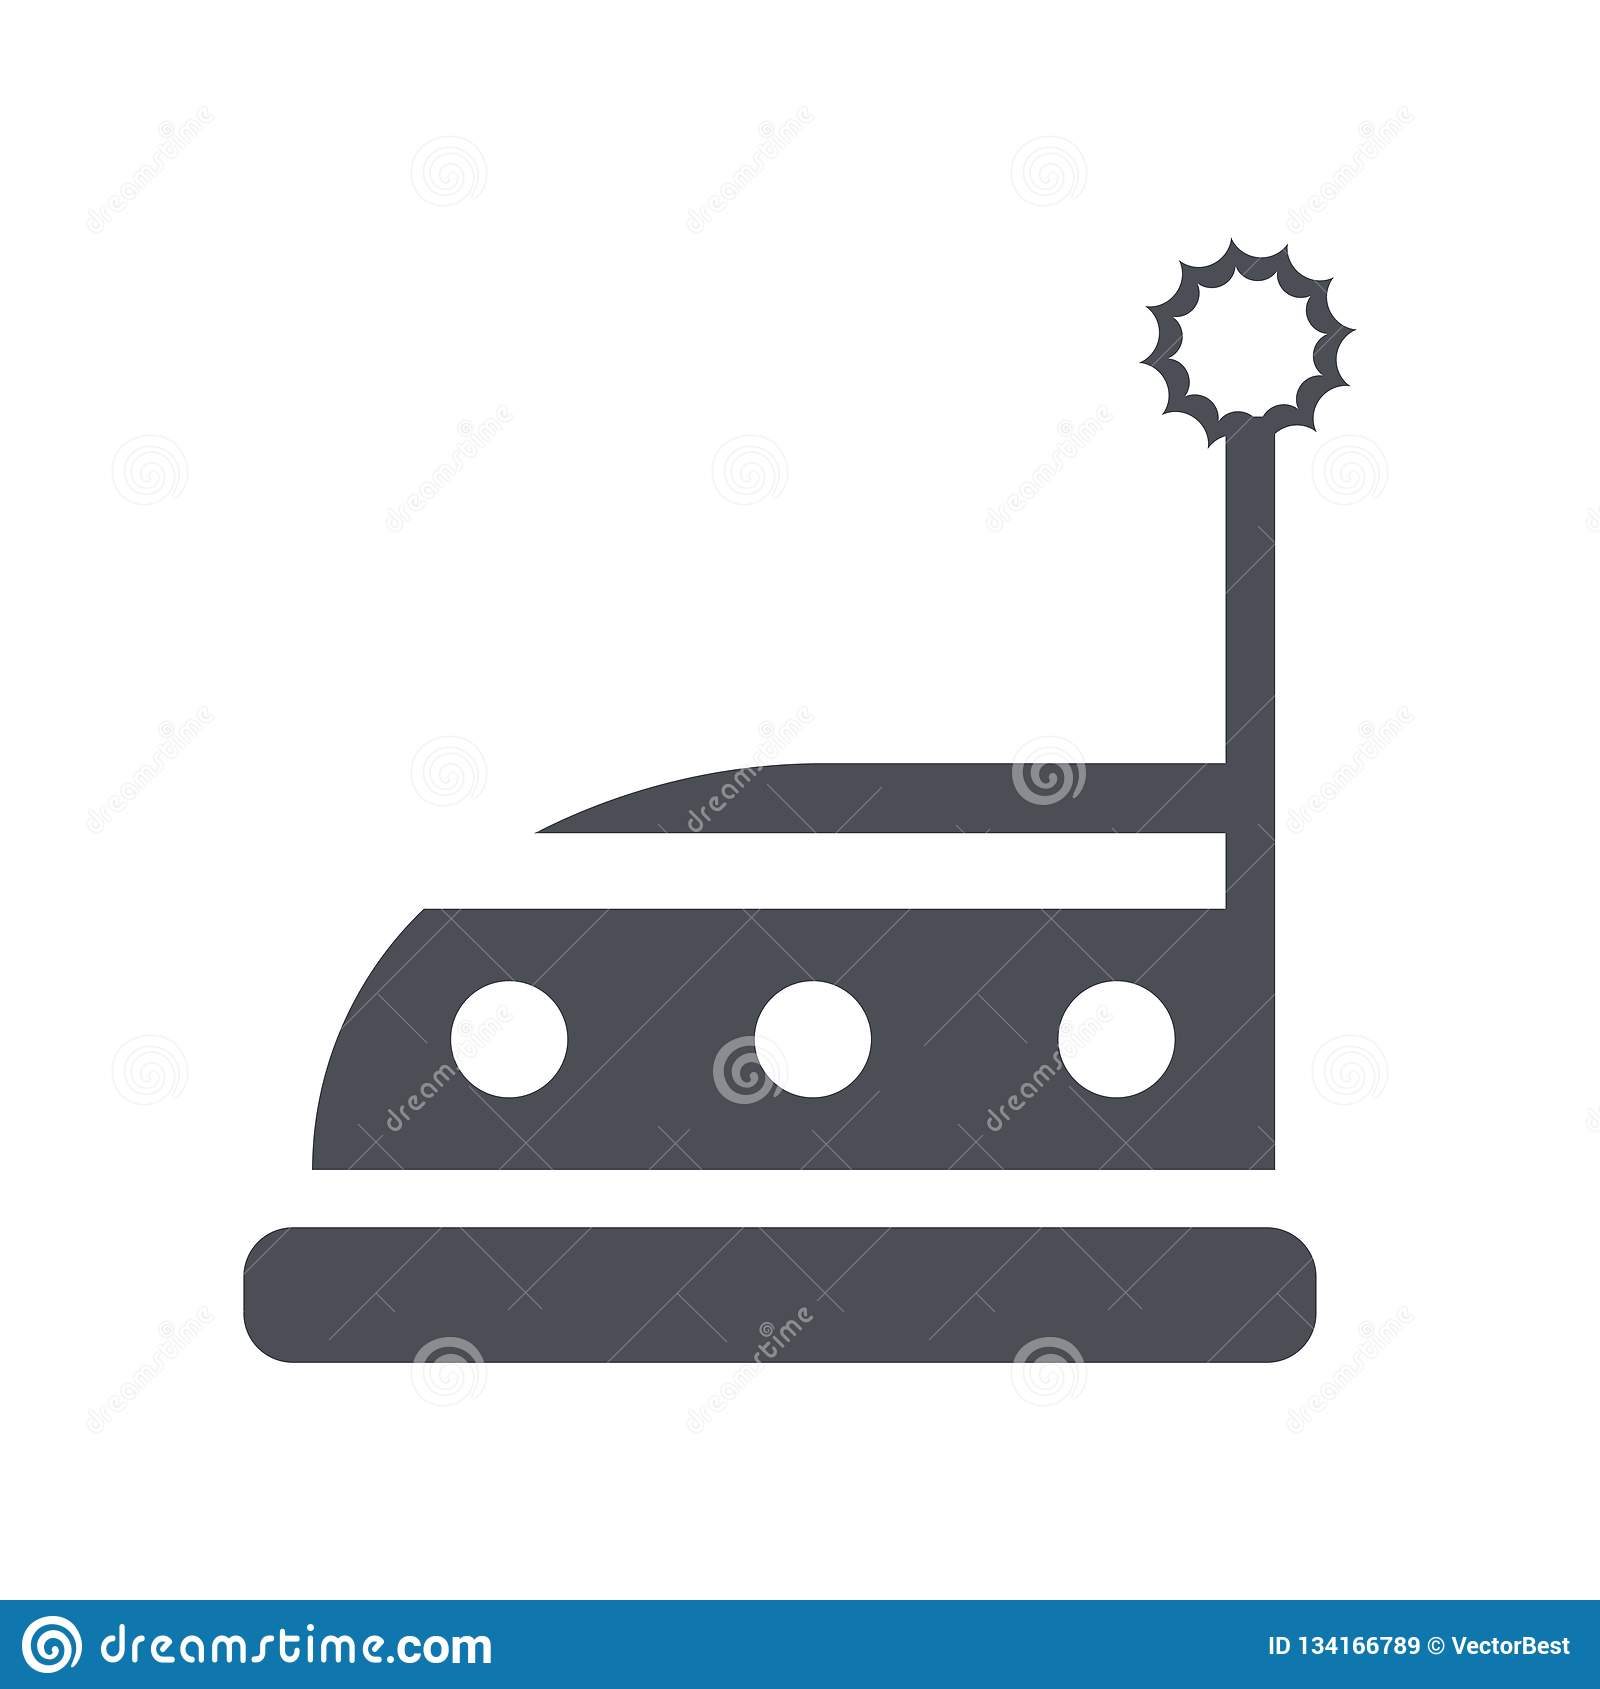 Bumper car icon vector sign and symbol isolated on white background, Bumper car logo concept